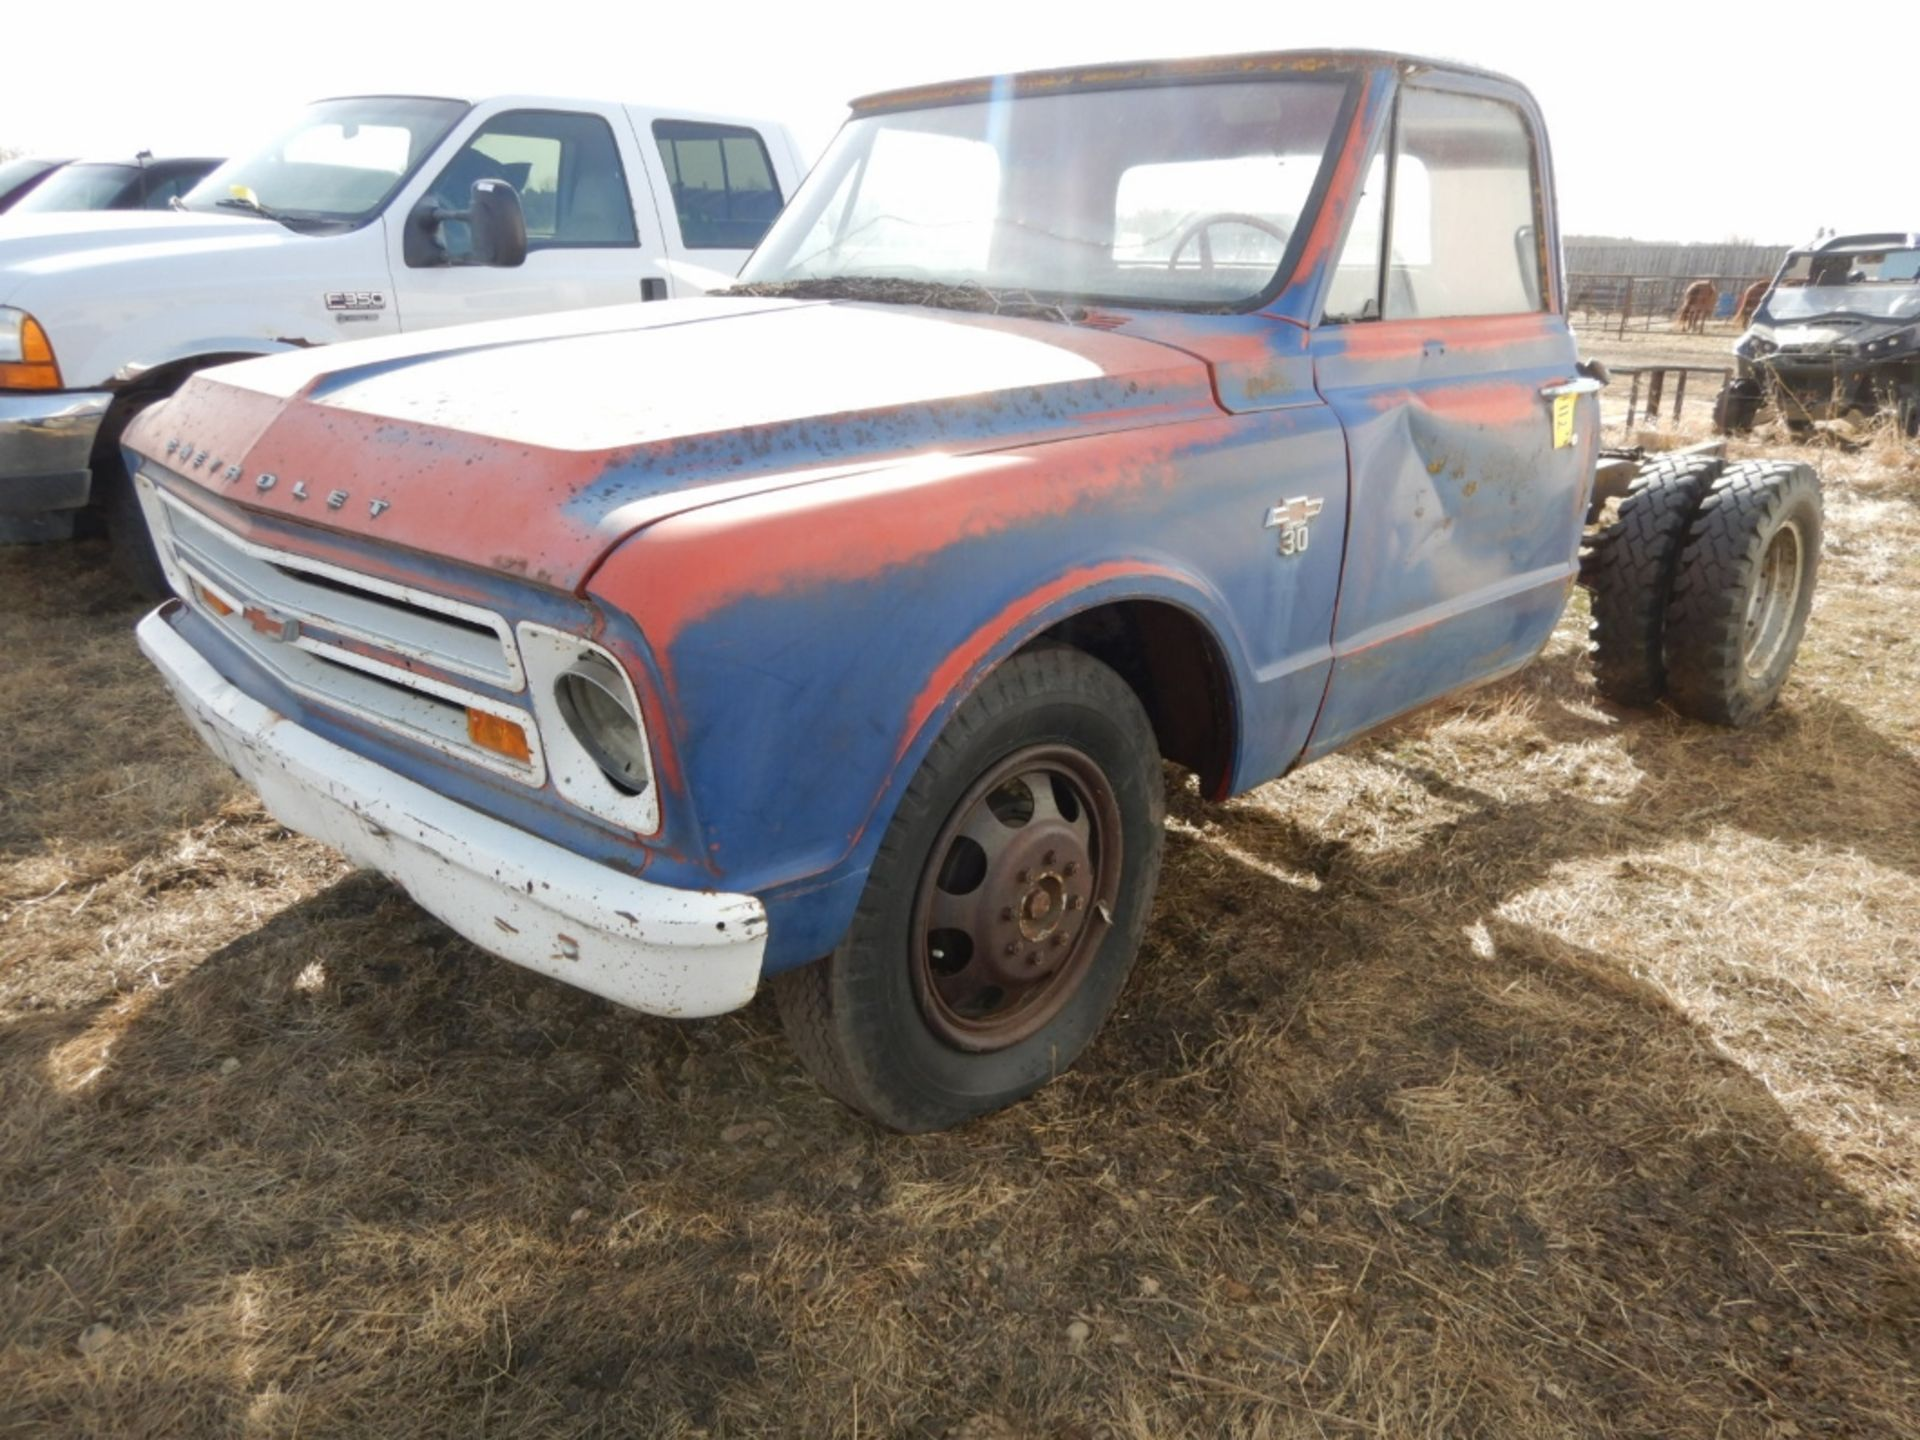 1970'S CHEV 30 CAB & CHASSIS - REG CAB, DUALS, NO ENGINE OR TRANSMISSION S/N CE3371125498 - Image 2 of 9